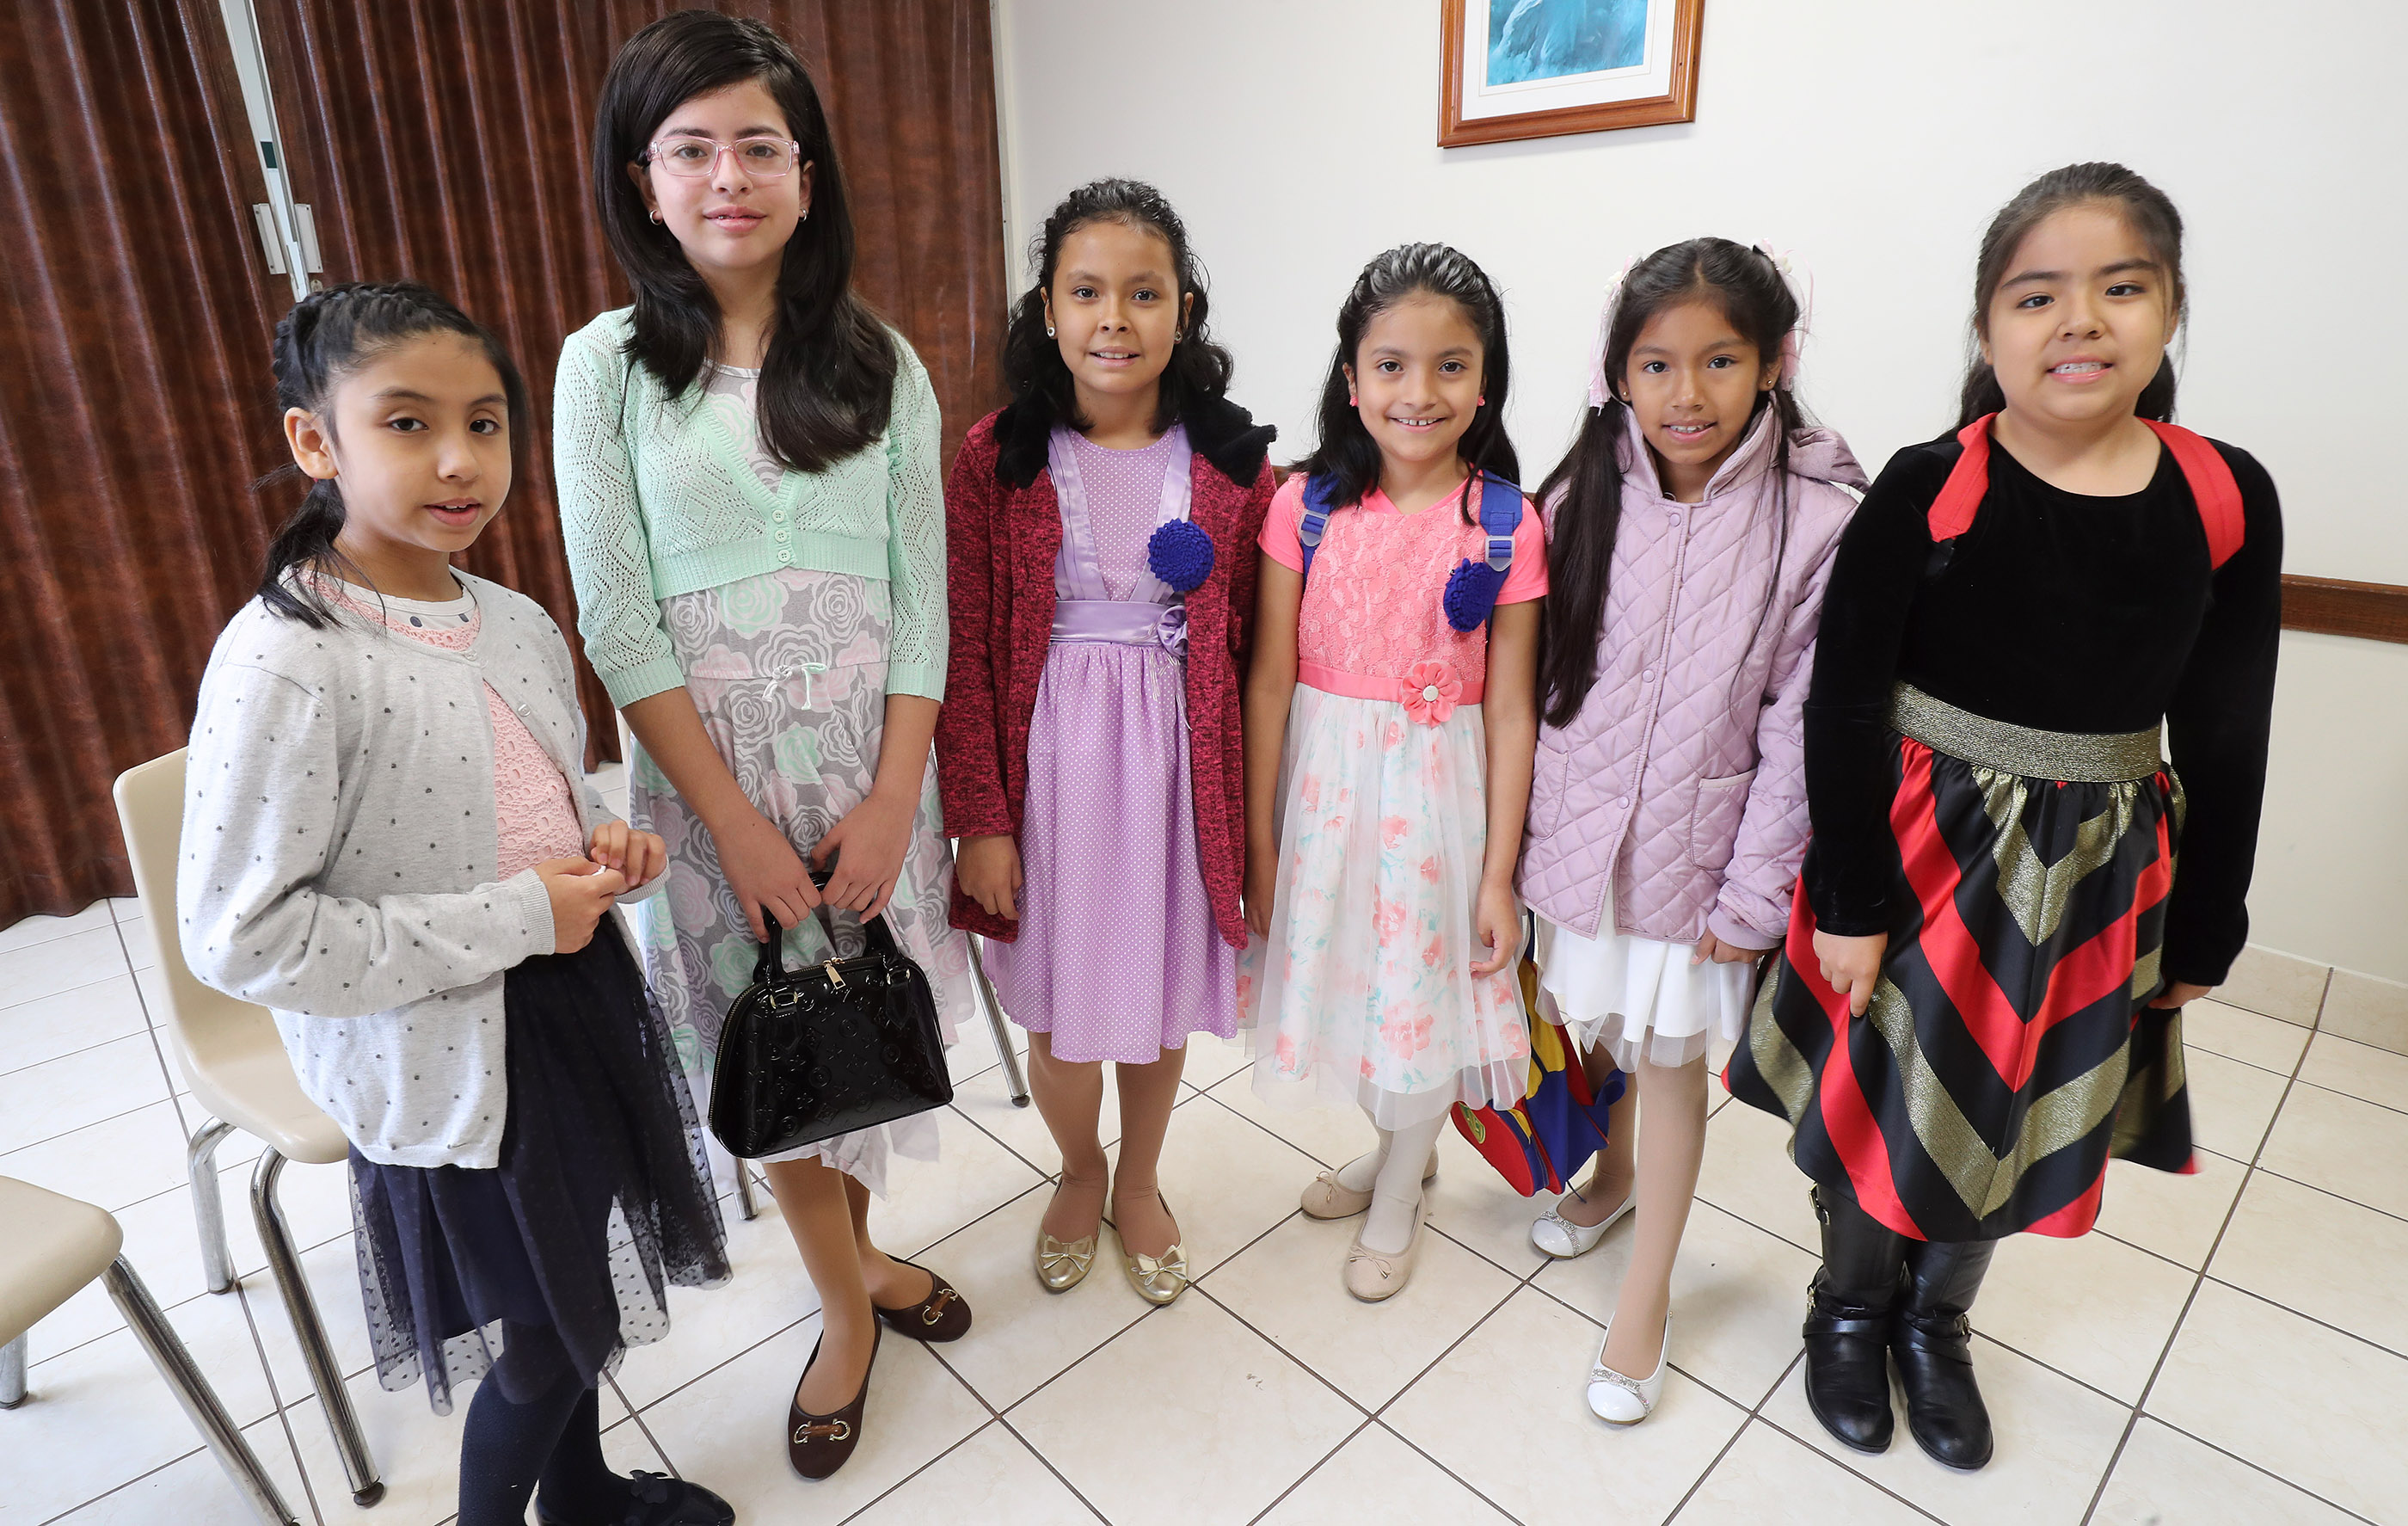 Primary children pose for a photo prior to class in Lima, Peru on Oct. 21, 2018. On Dec. 14, the First Presidency announced changes to the timeline children and youth in The Church of Jesus Christ of Latter-day Saints will complete Primary, move from one class or quorum to the next and attend the temple for the first time. The changes, effective January 2019, also impact when young men may be ordained to priesthood offices.